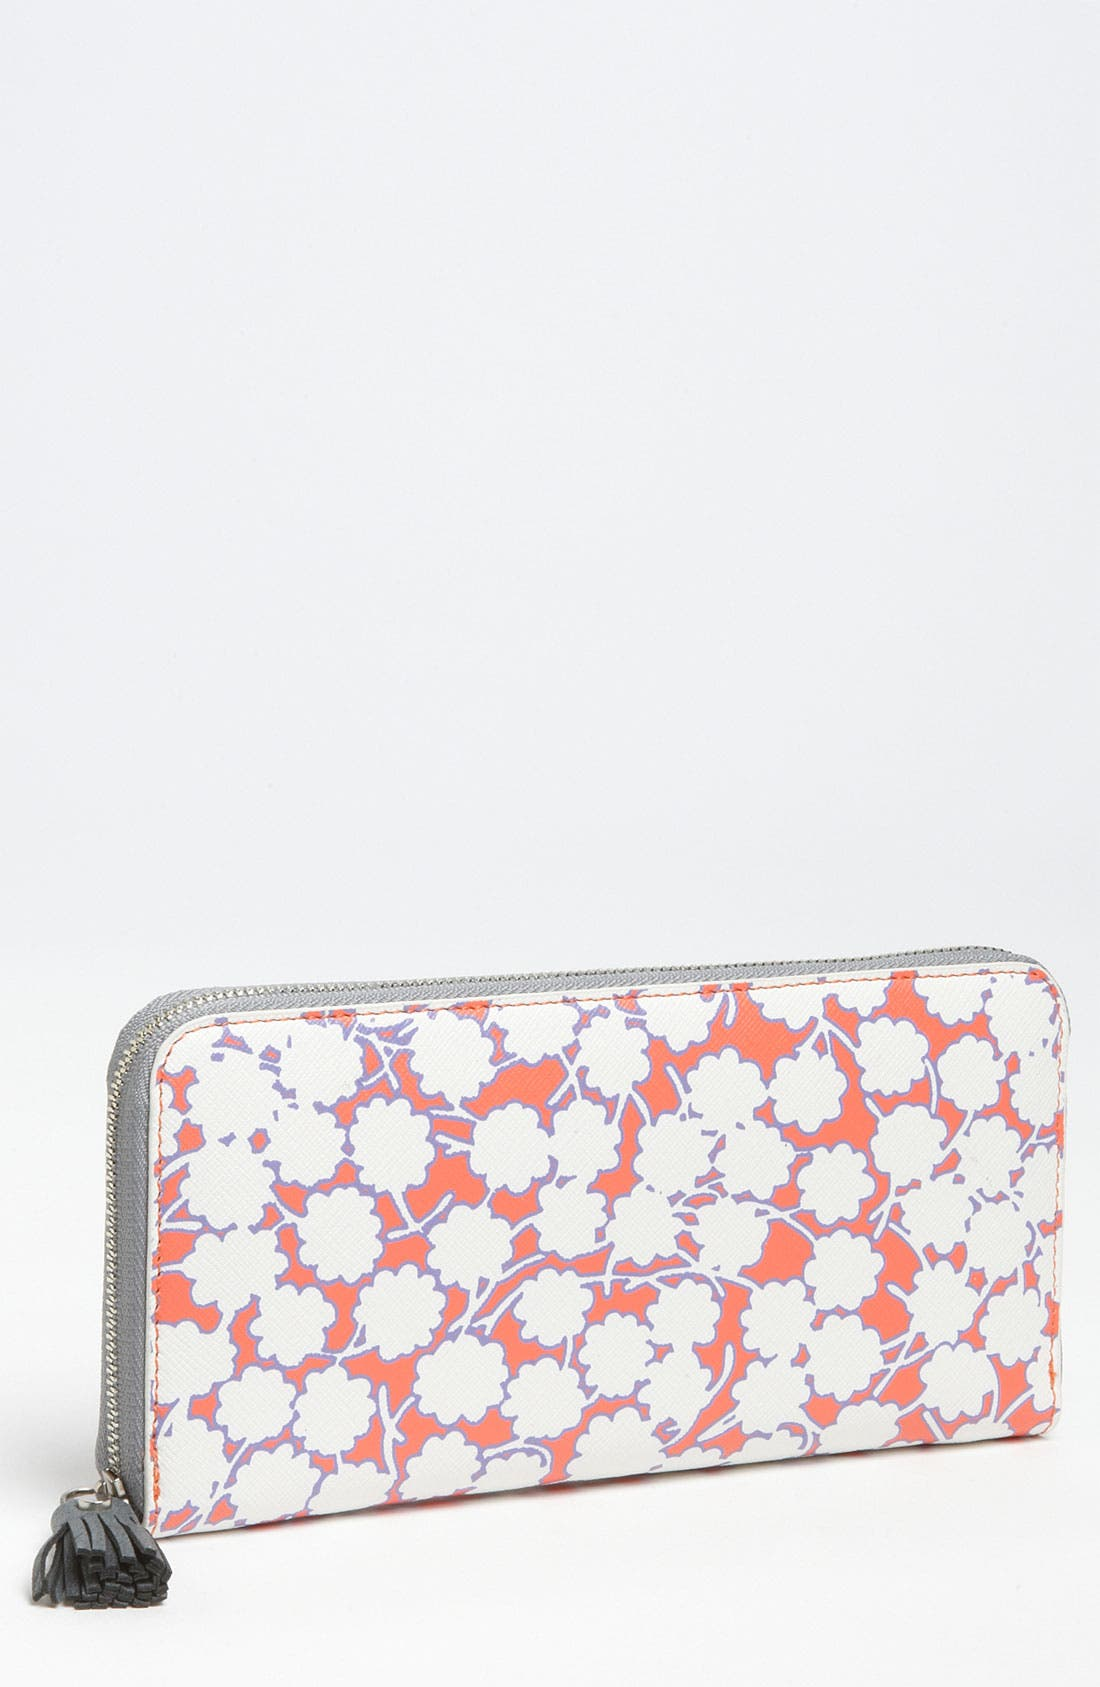 Alternate Image 1 Selected - Diane von Furstenberg 'Vintage' Zip Around Wallet